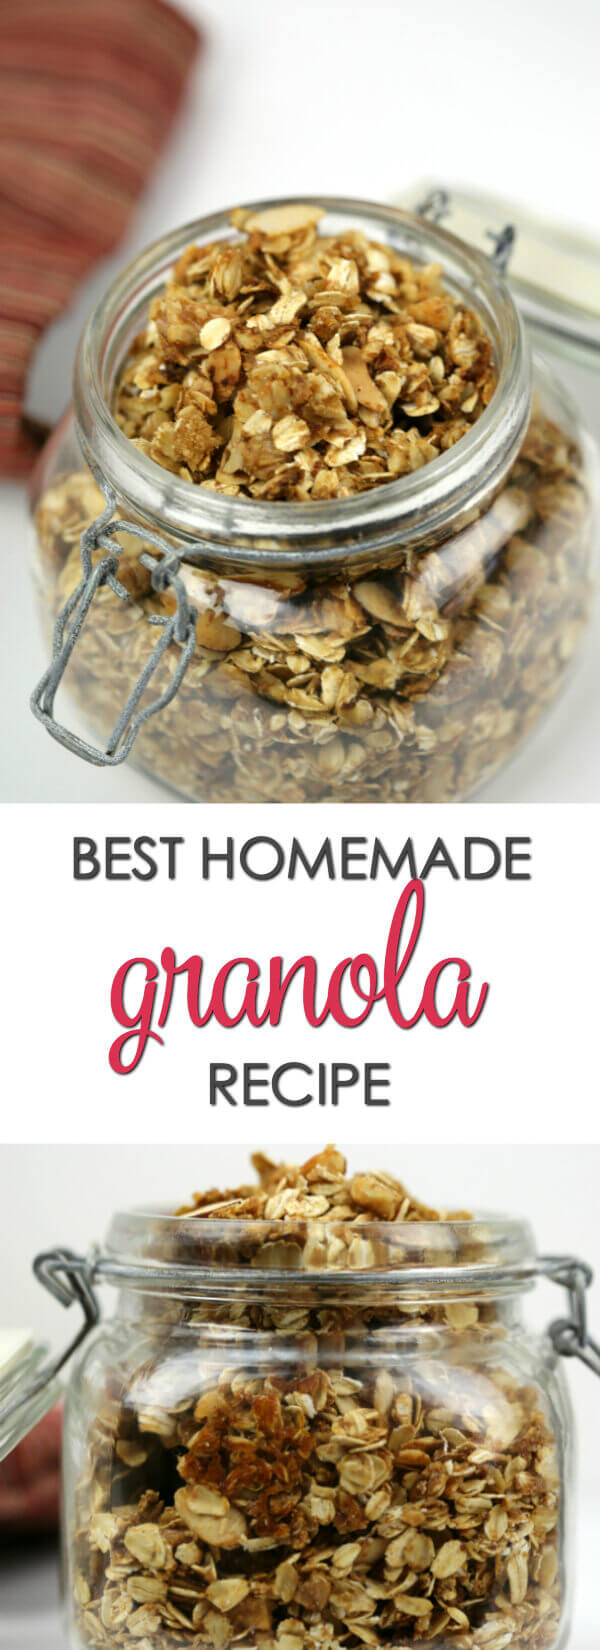 Best Ever Homemade Granola - look no further! This is the best homemade granola recipe you will ever find